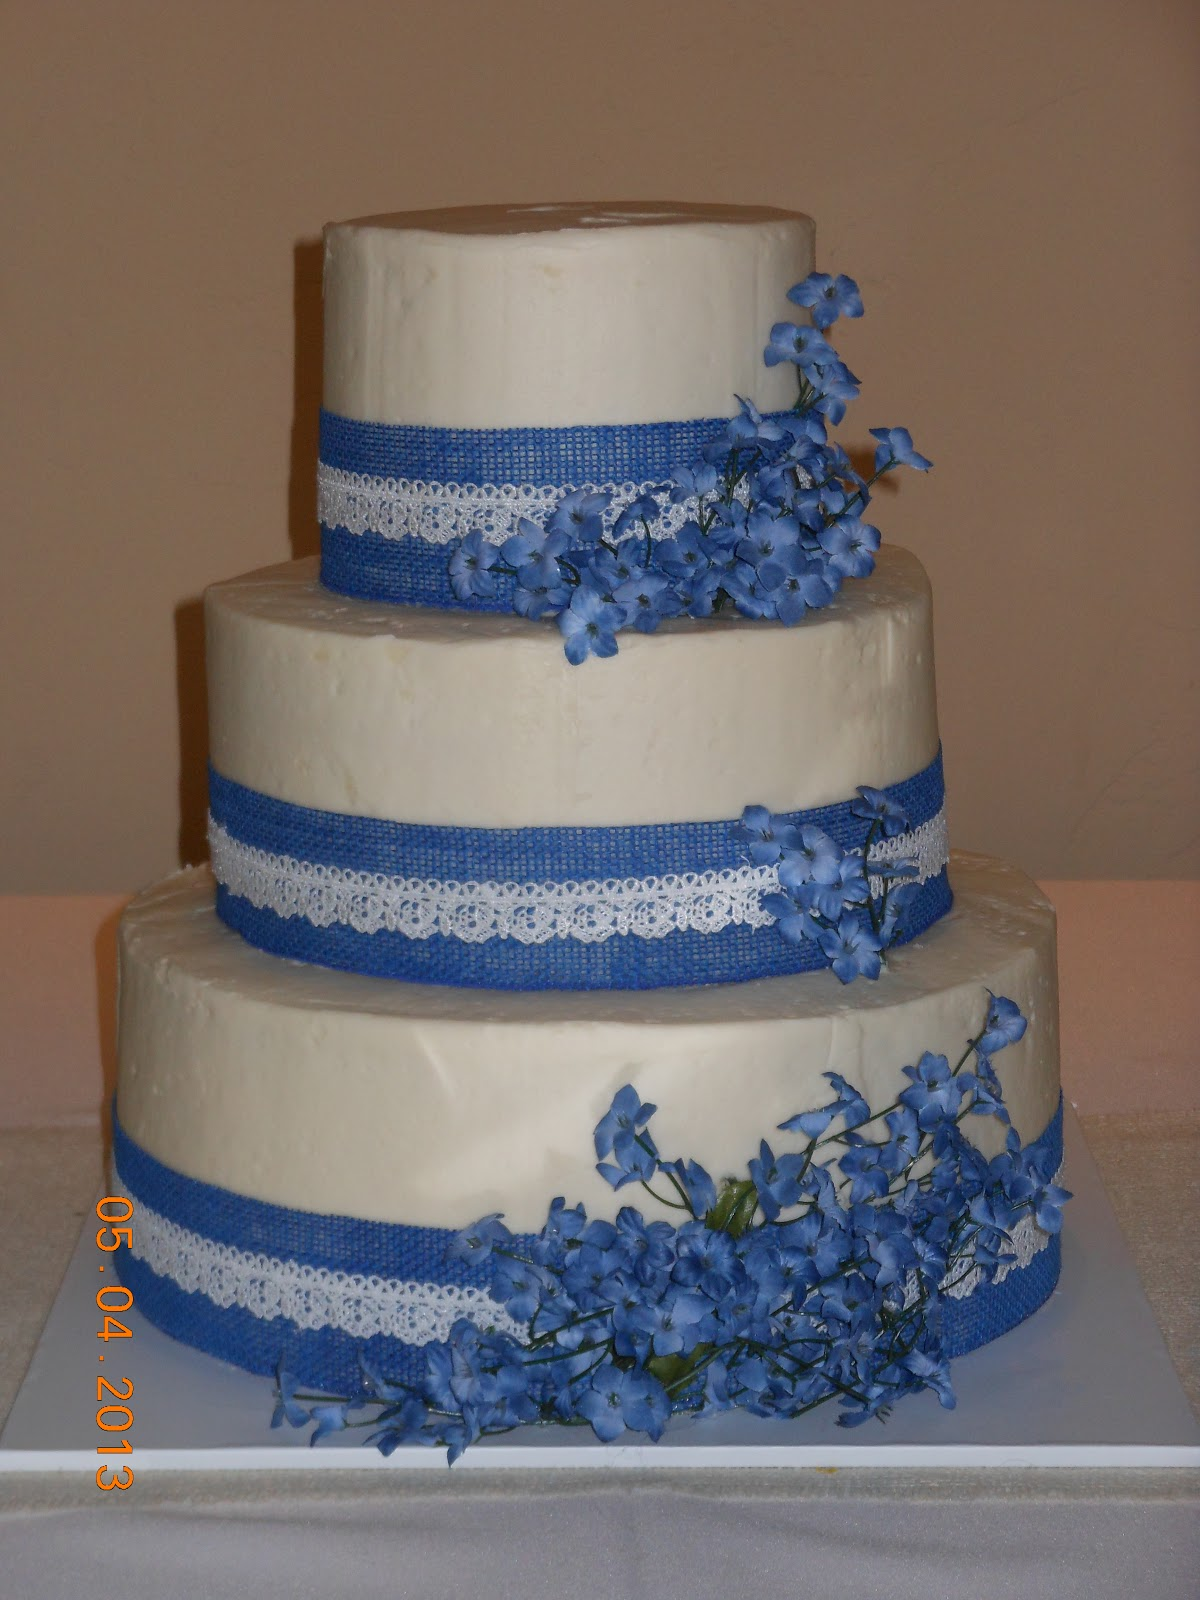 it 39 s a piece of cake blue and white country wedding cake. Black Bedroom Furniture Sets. Home Design Ideas